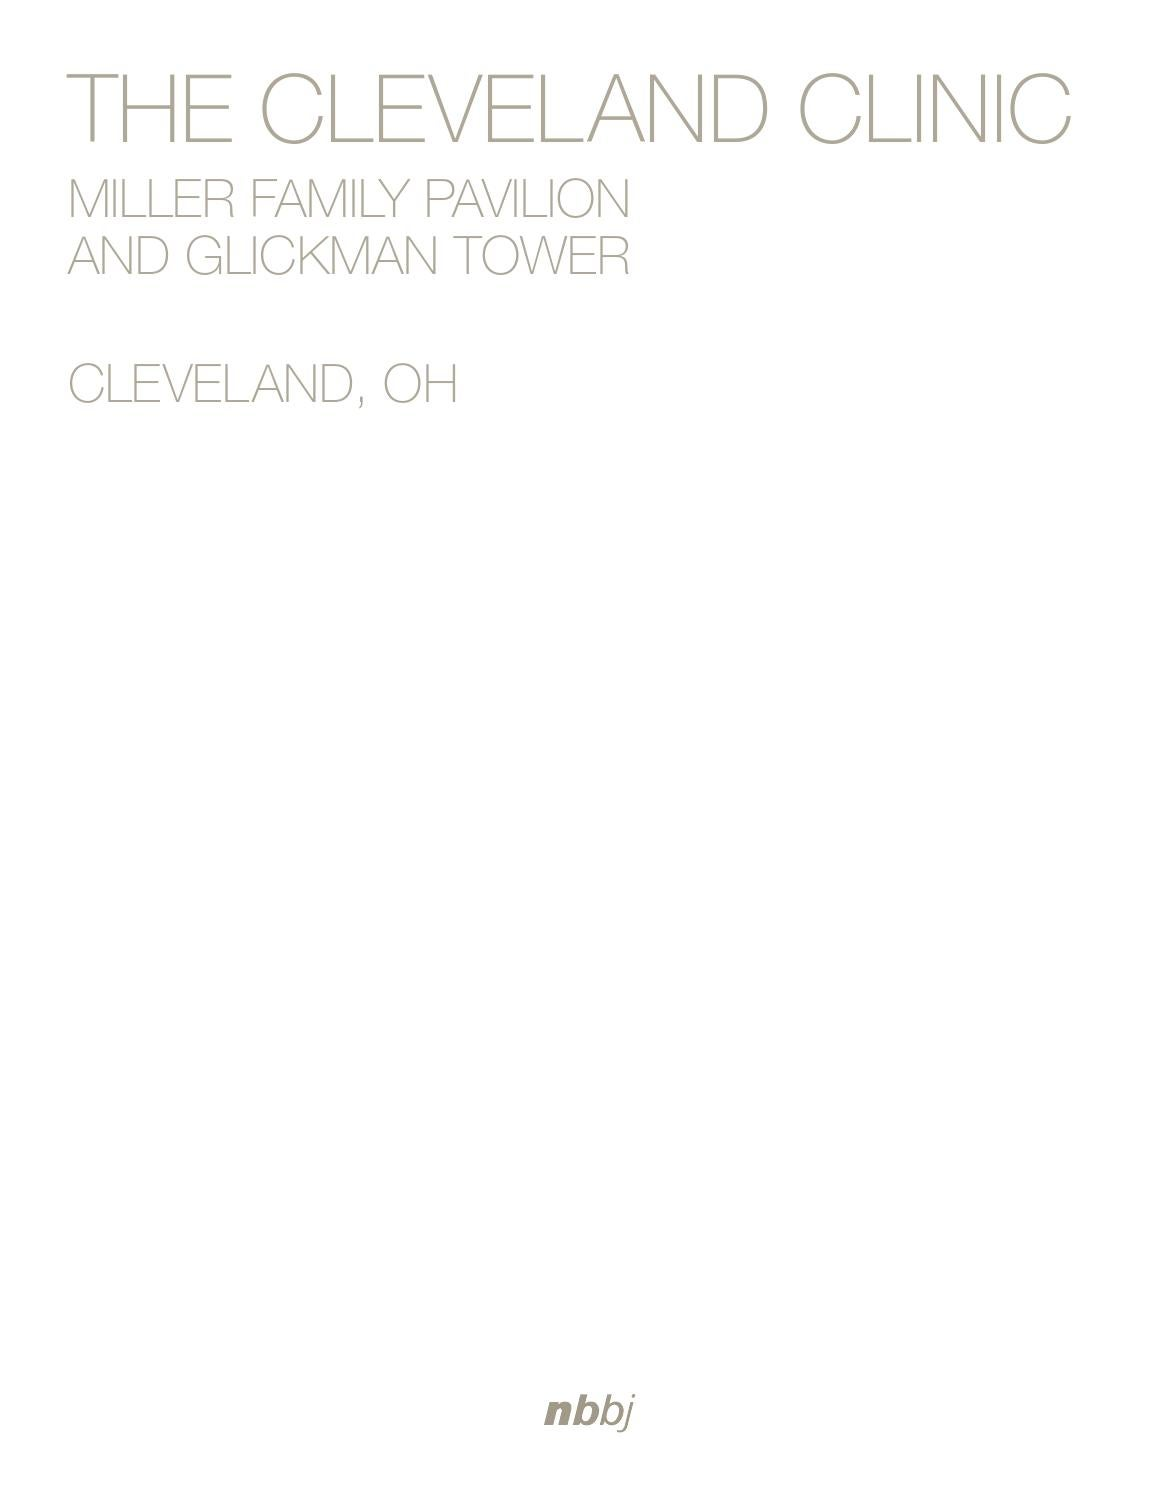 The Cleveland Clinic, Miller Family Pavilion and Glickman